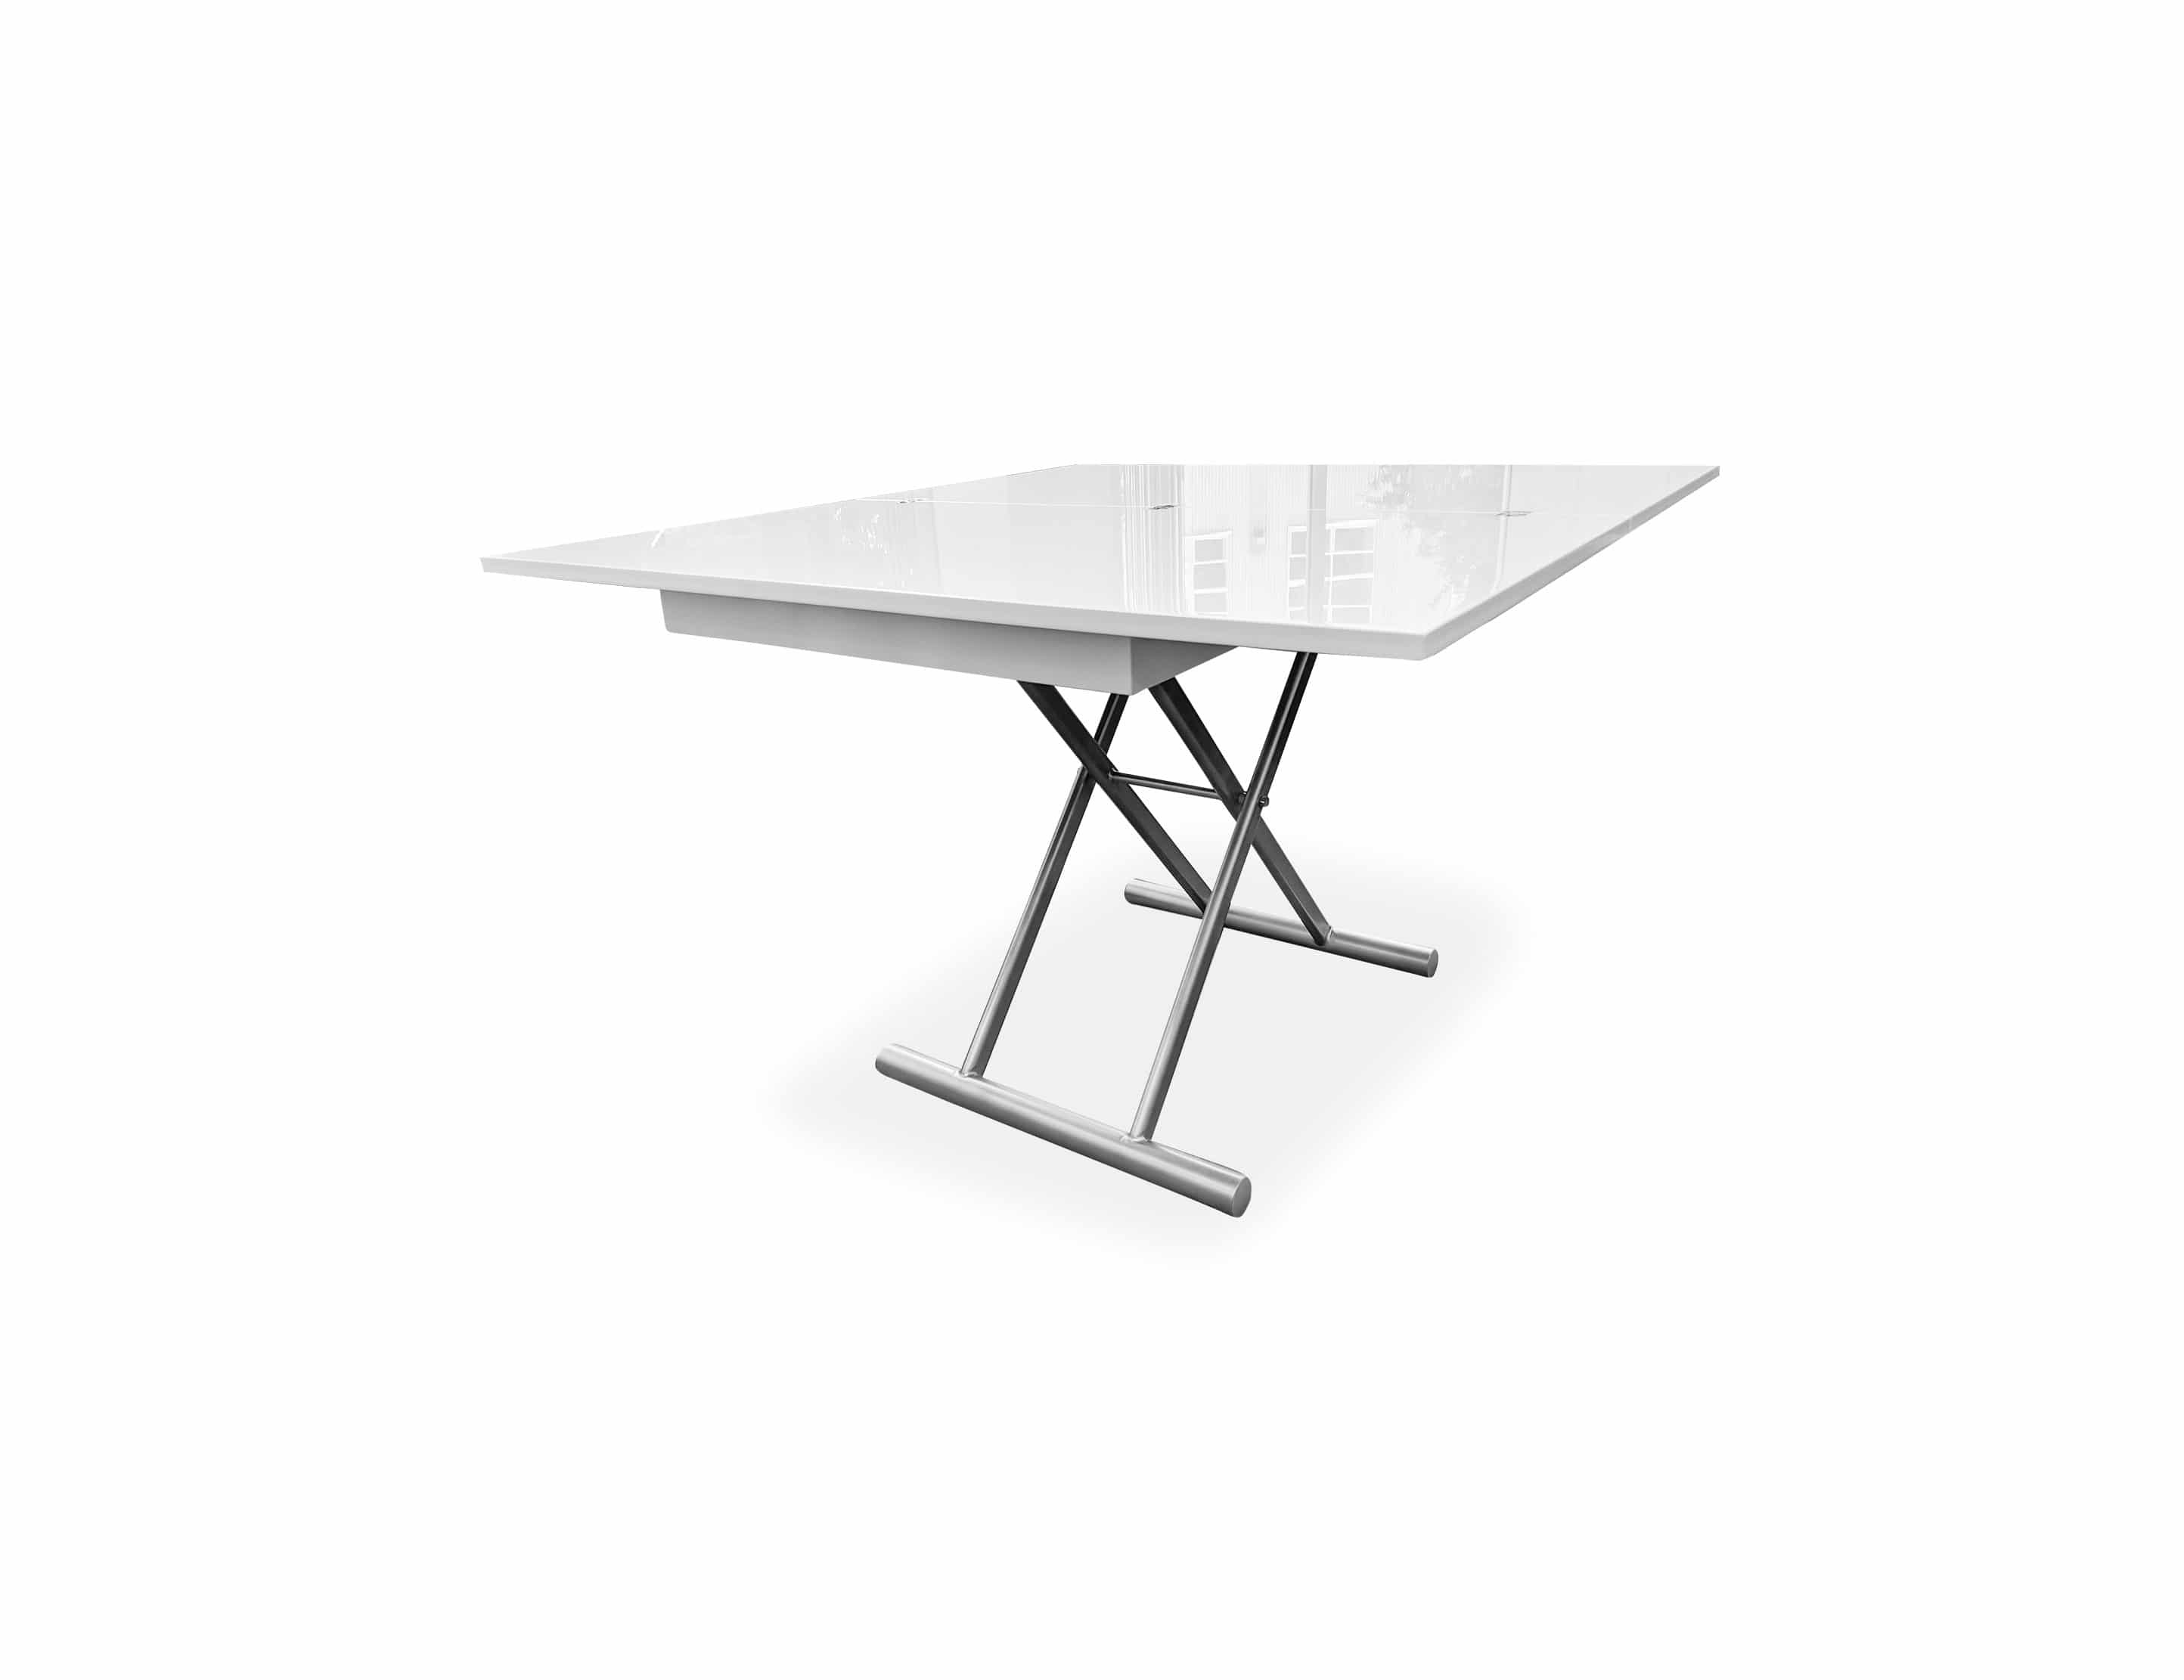 Alzare Square Transforming Coffee Table Expand Furniture Folding Tables Smarter Wall Beds Space Savers